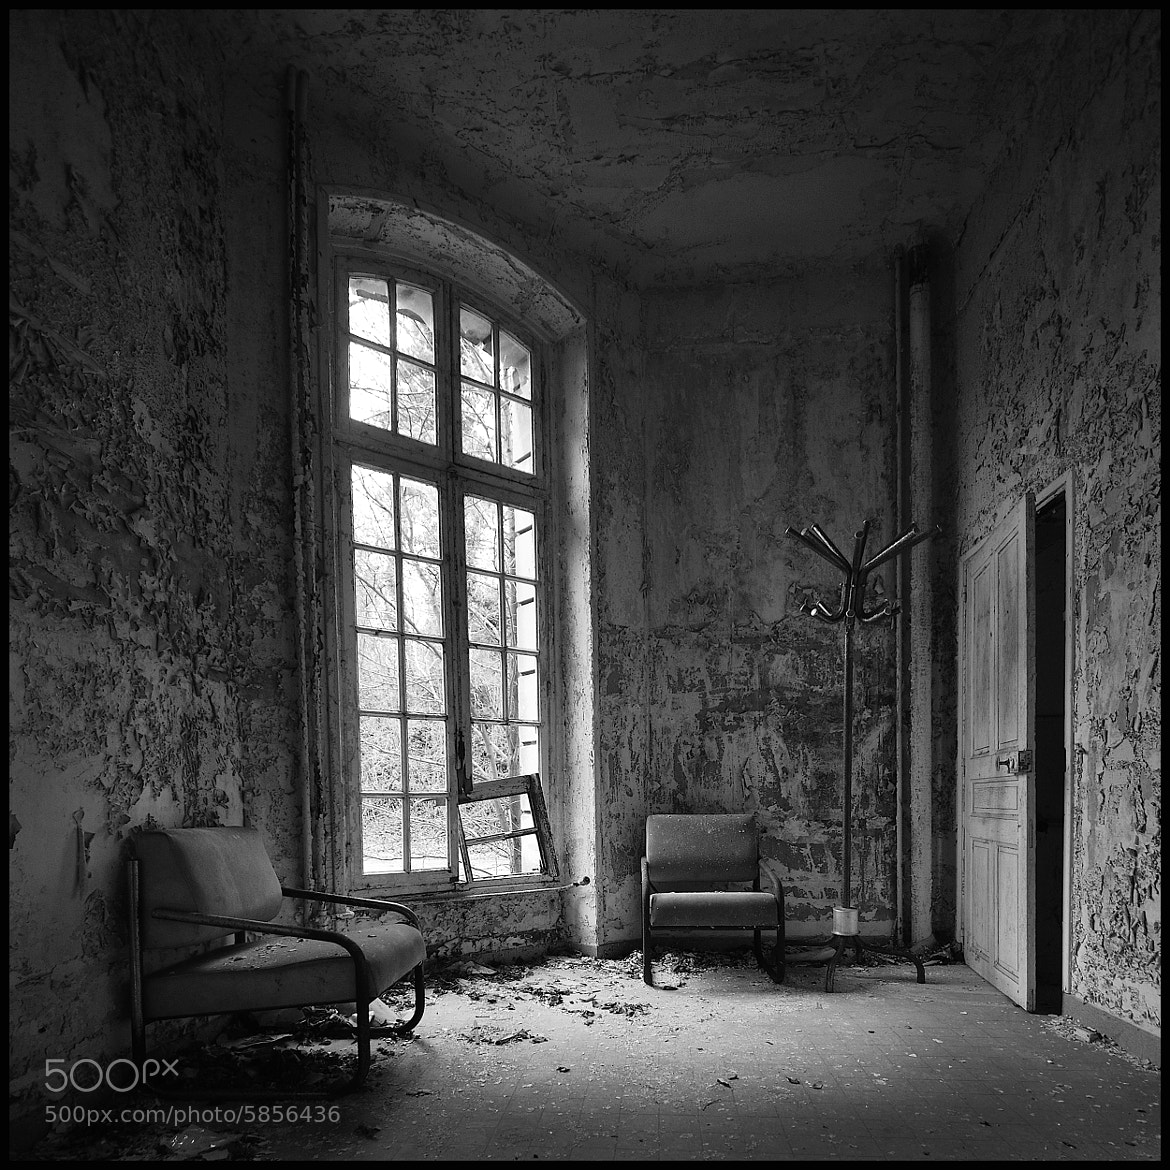 Photograph The Waiting Room by Christophe Regnaud on 500px